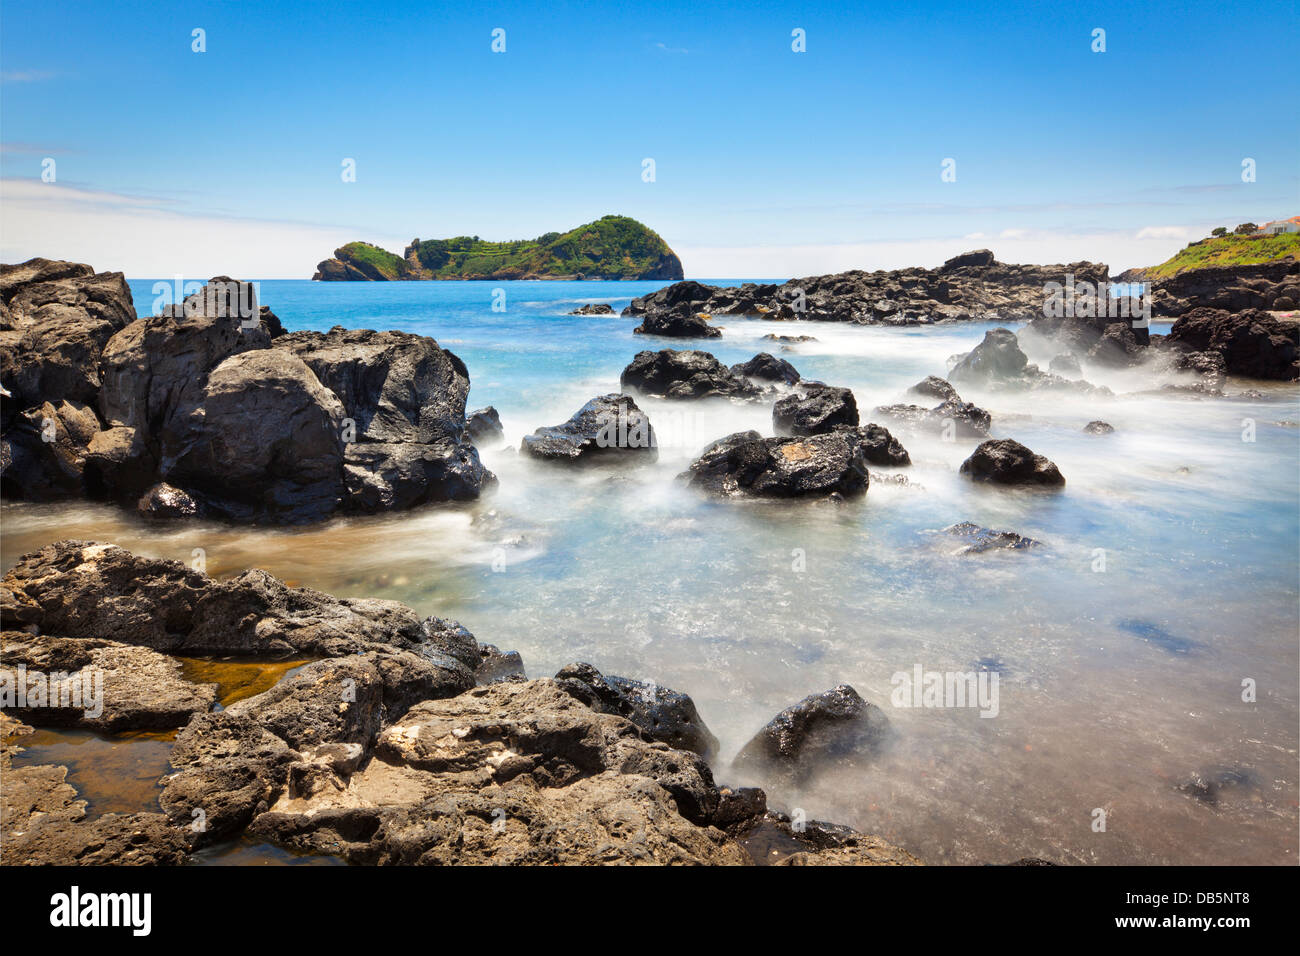 View from the rocky coast of São Miguel to the islet of Vila Franca. Long exposure shot. - Stock Image